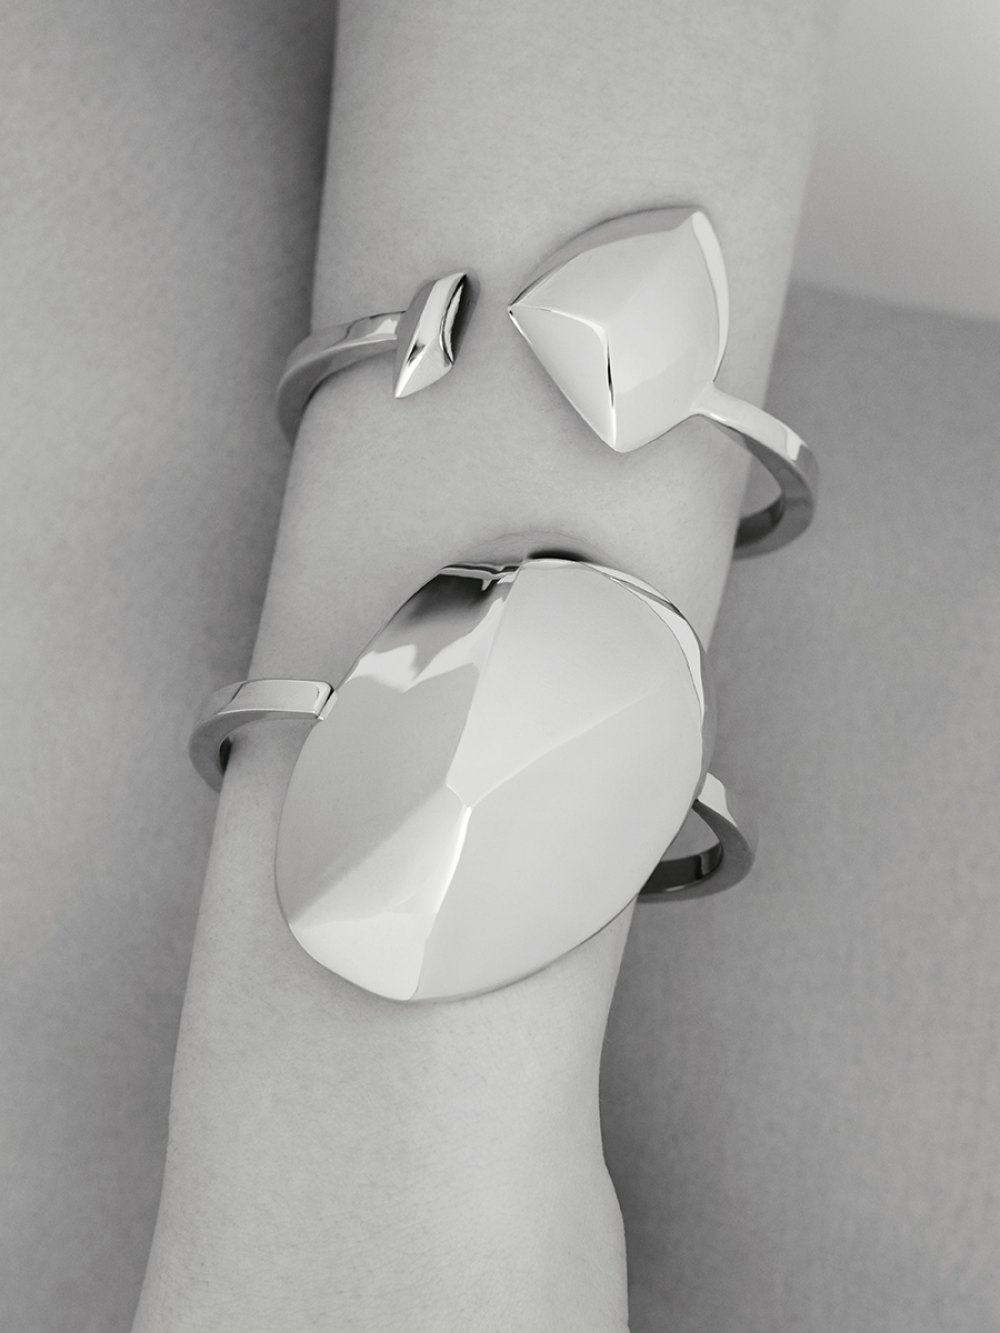 DANCING STONE CUFF NR 10 GOLDENSTONECOLLECTION SCULPTURAL JEWELLERY WITH SHINY SURFACES XENIABOUSDESIGN